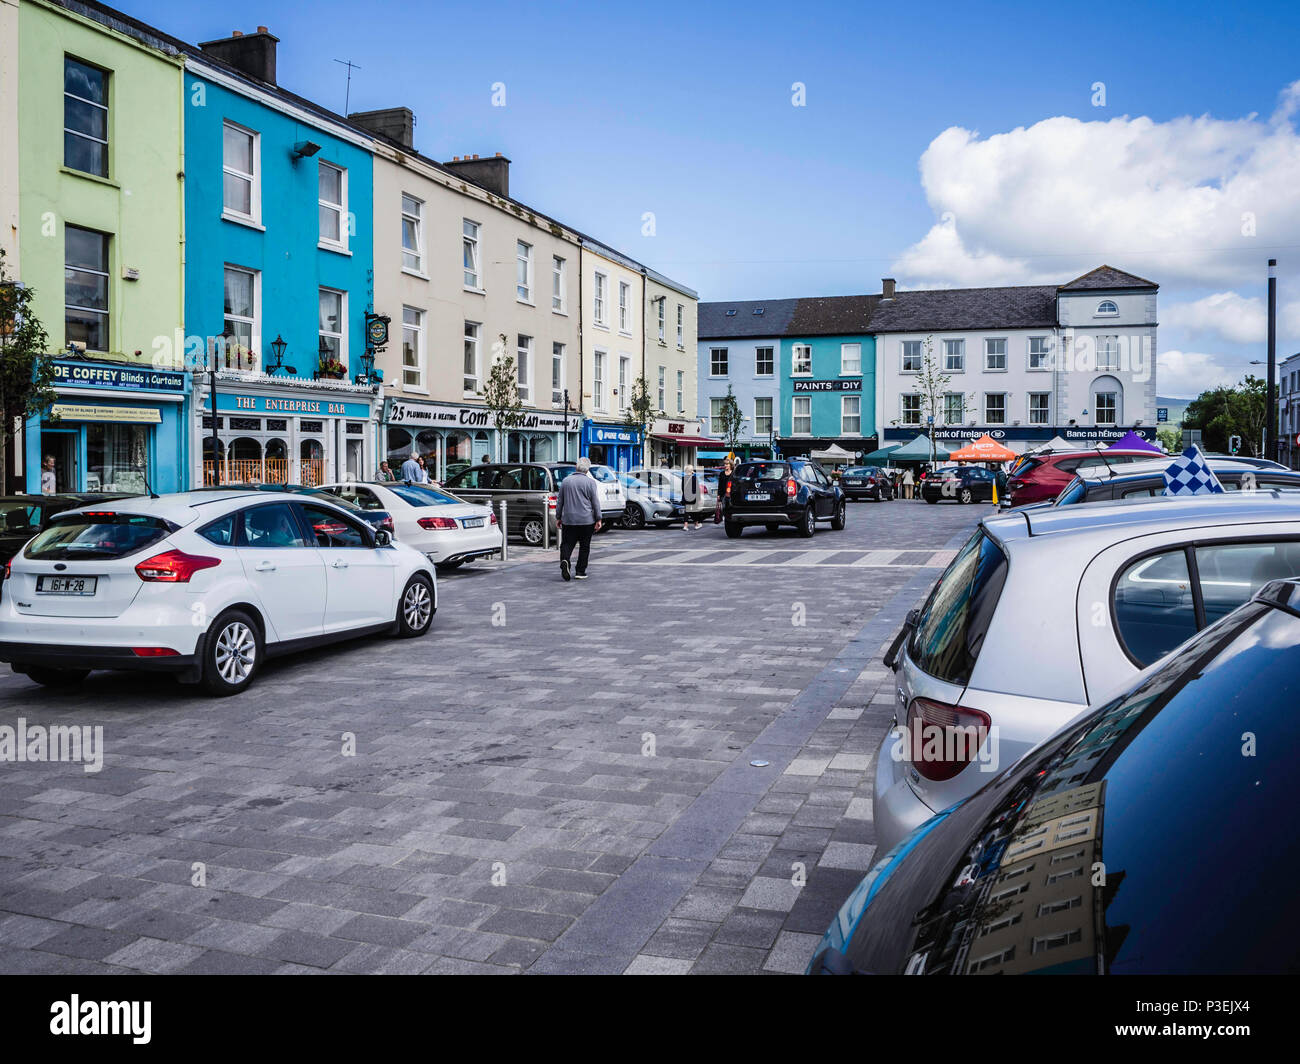 292b5030ee73e Grattan Square, Dungarvan Stock Photo: 208690556 - Alamy